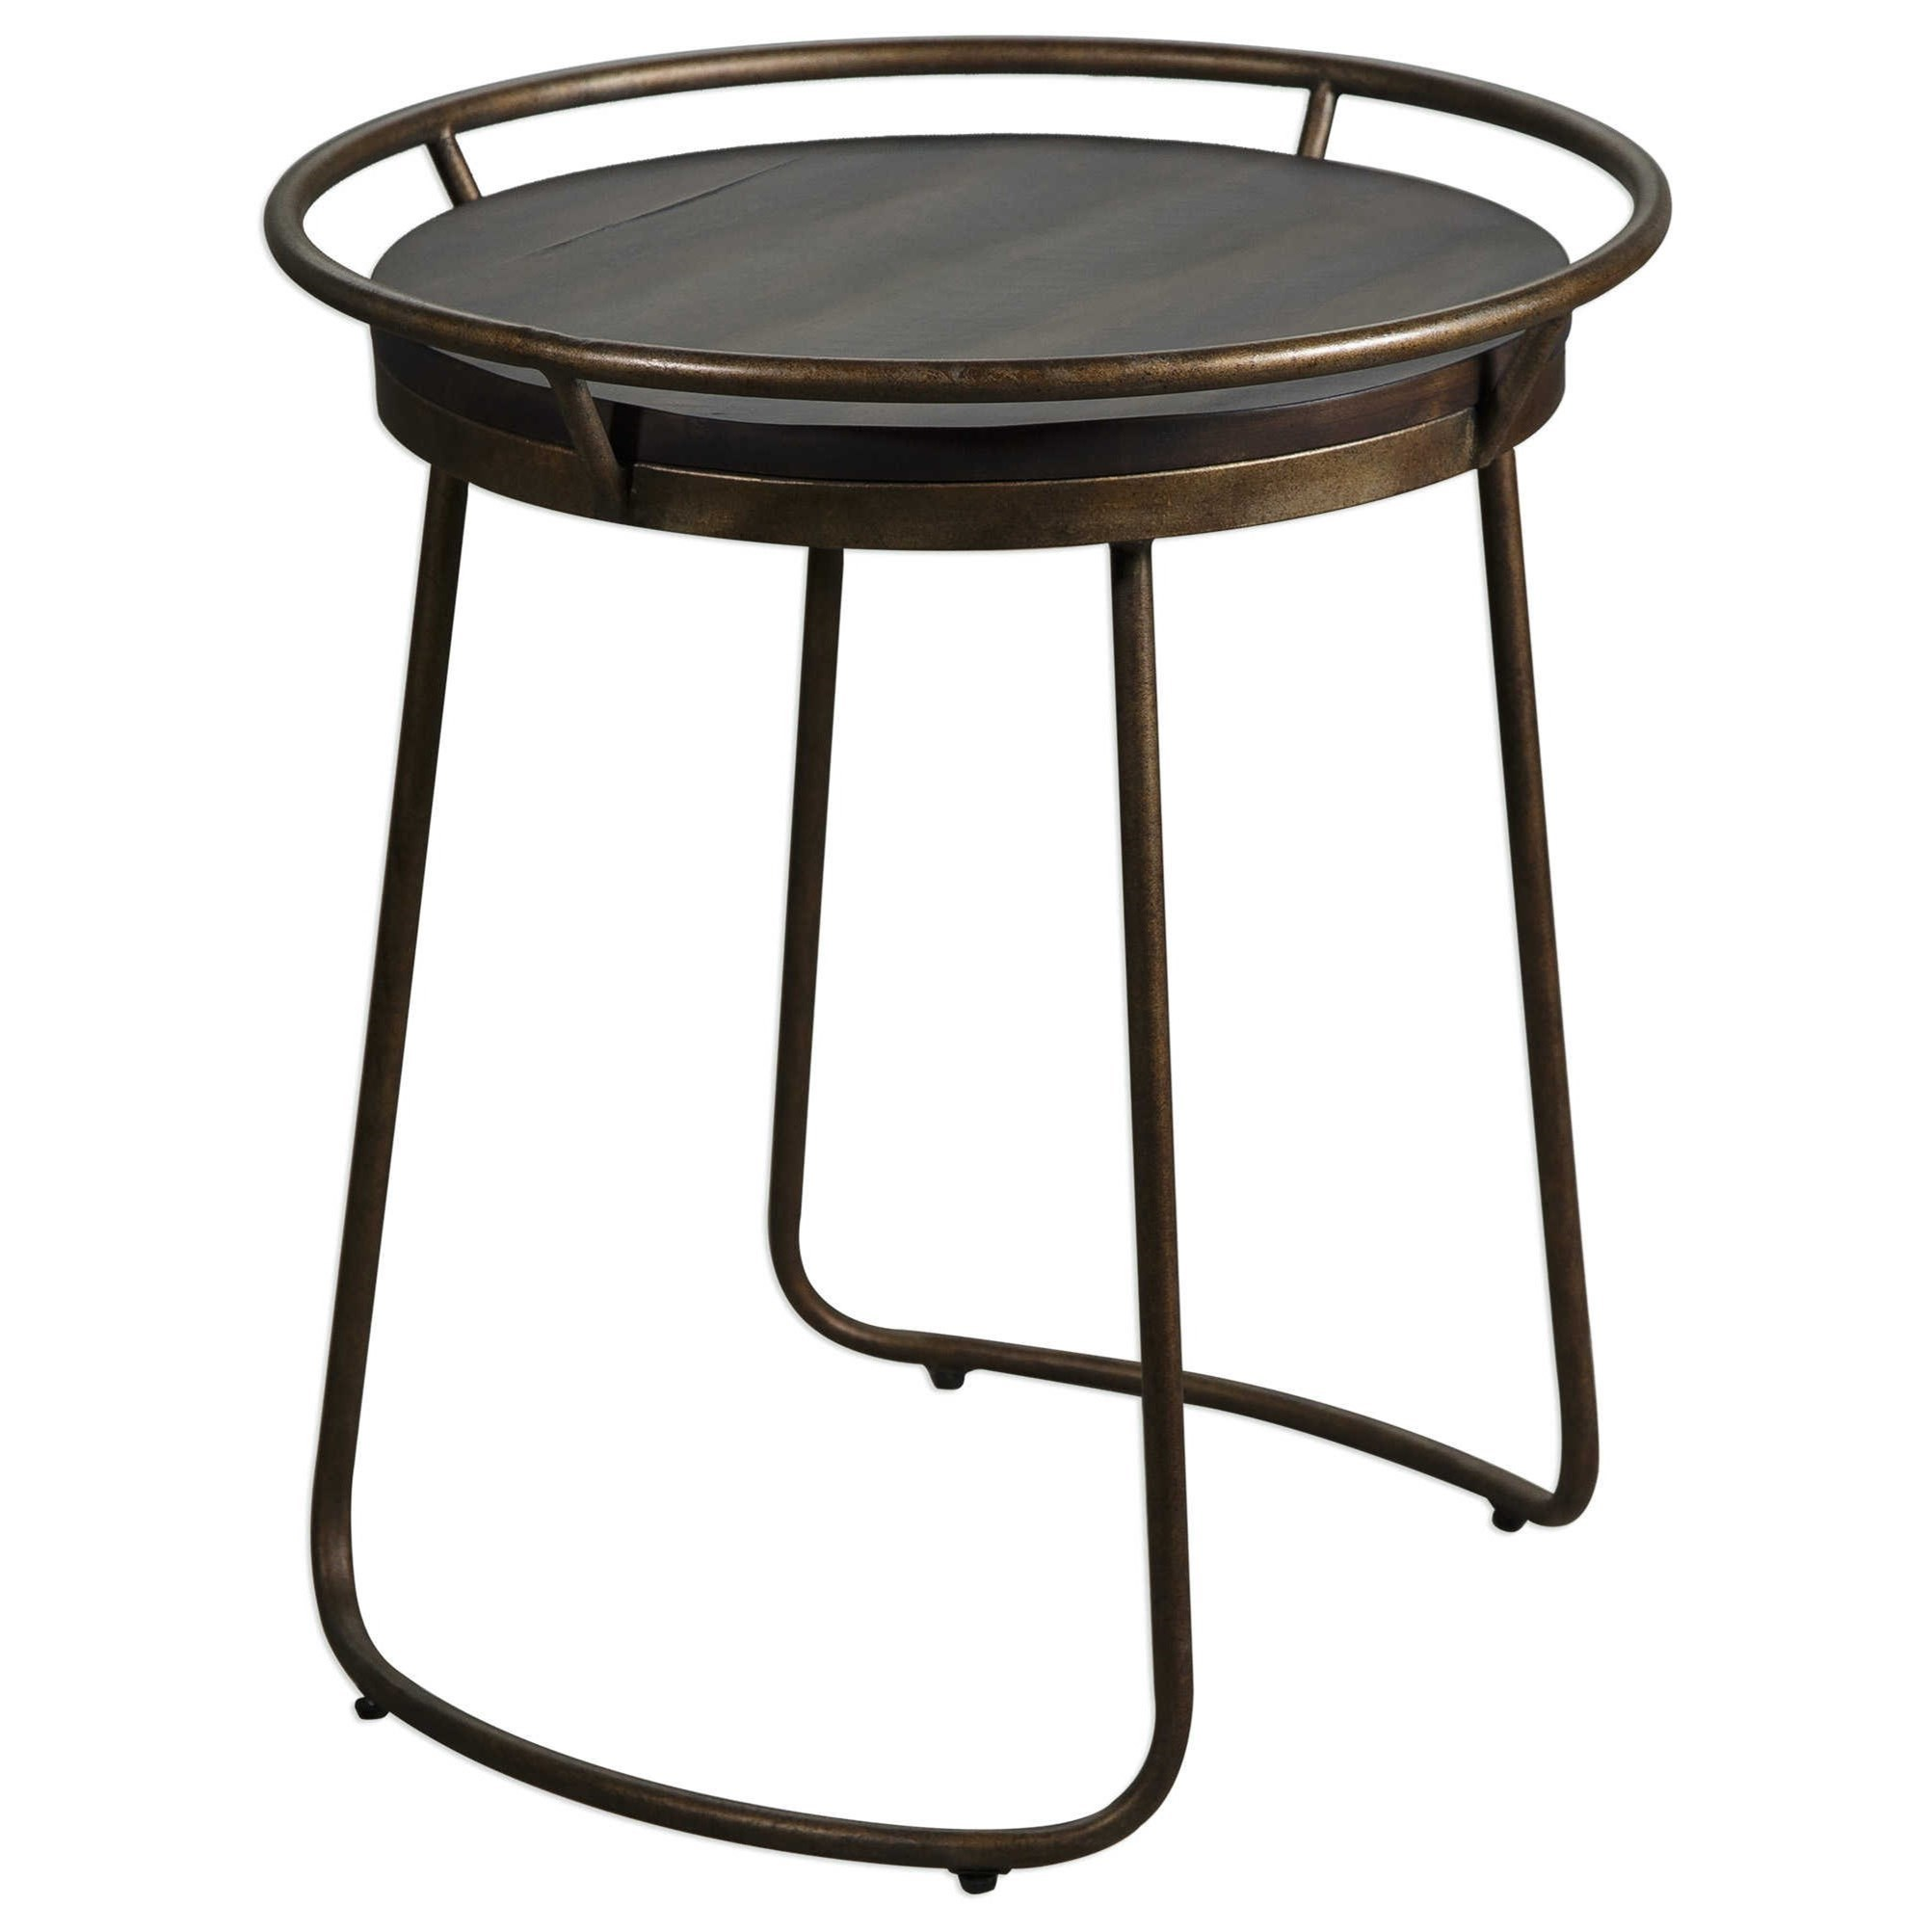 uttermost accent furniture rayen round table suburban products color blythe narrow console cabinet mirrored hall west elm owl lamp mid century desk pier lighting low coffee silver